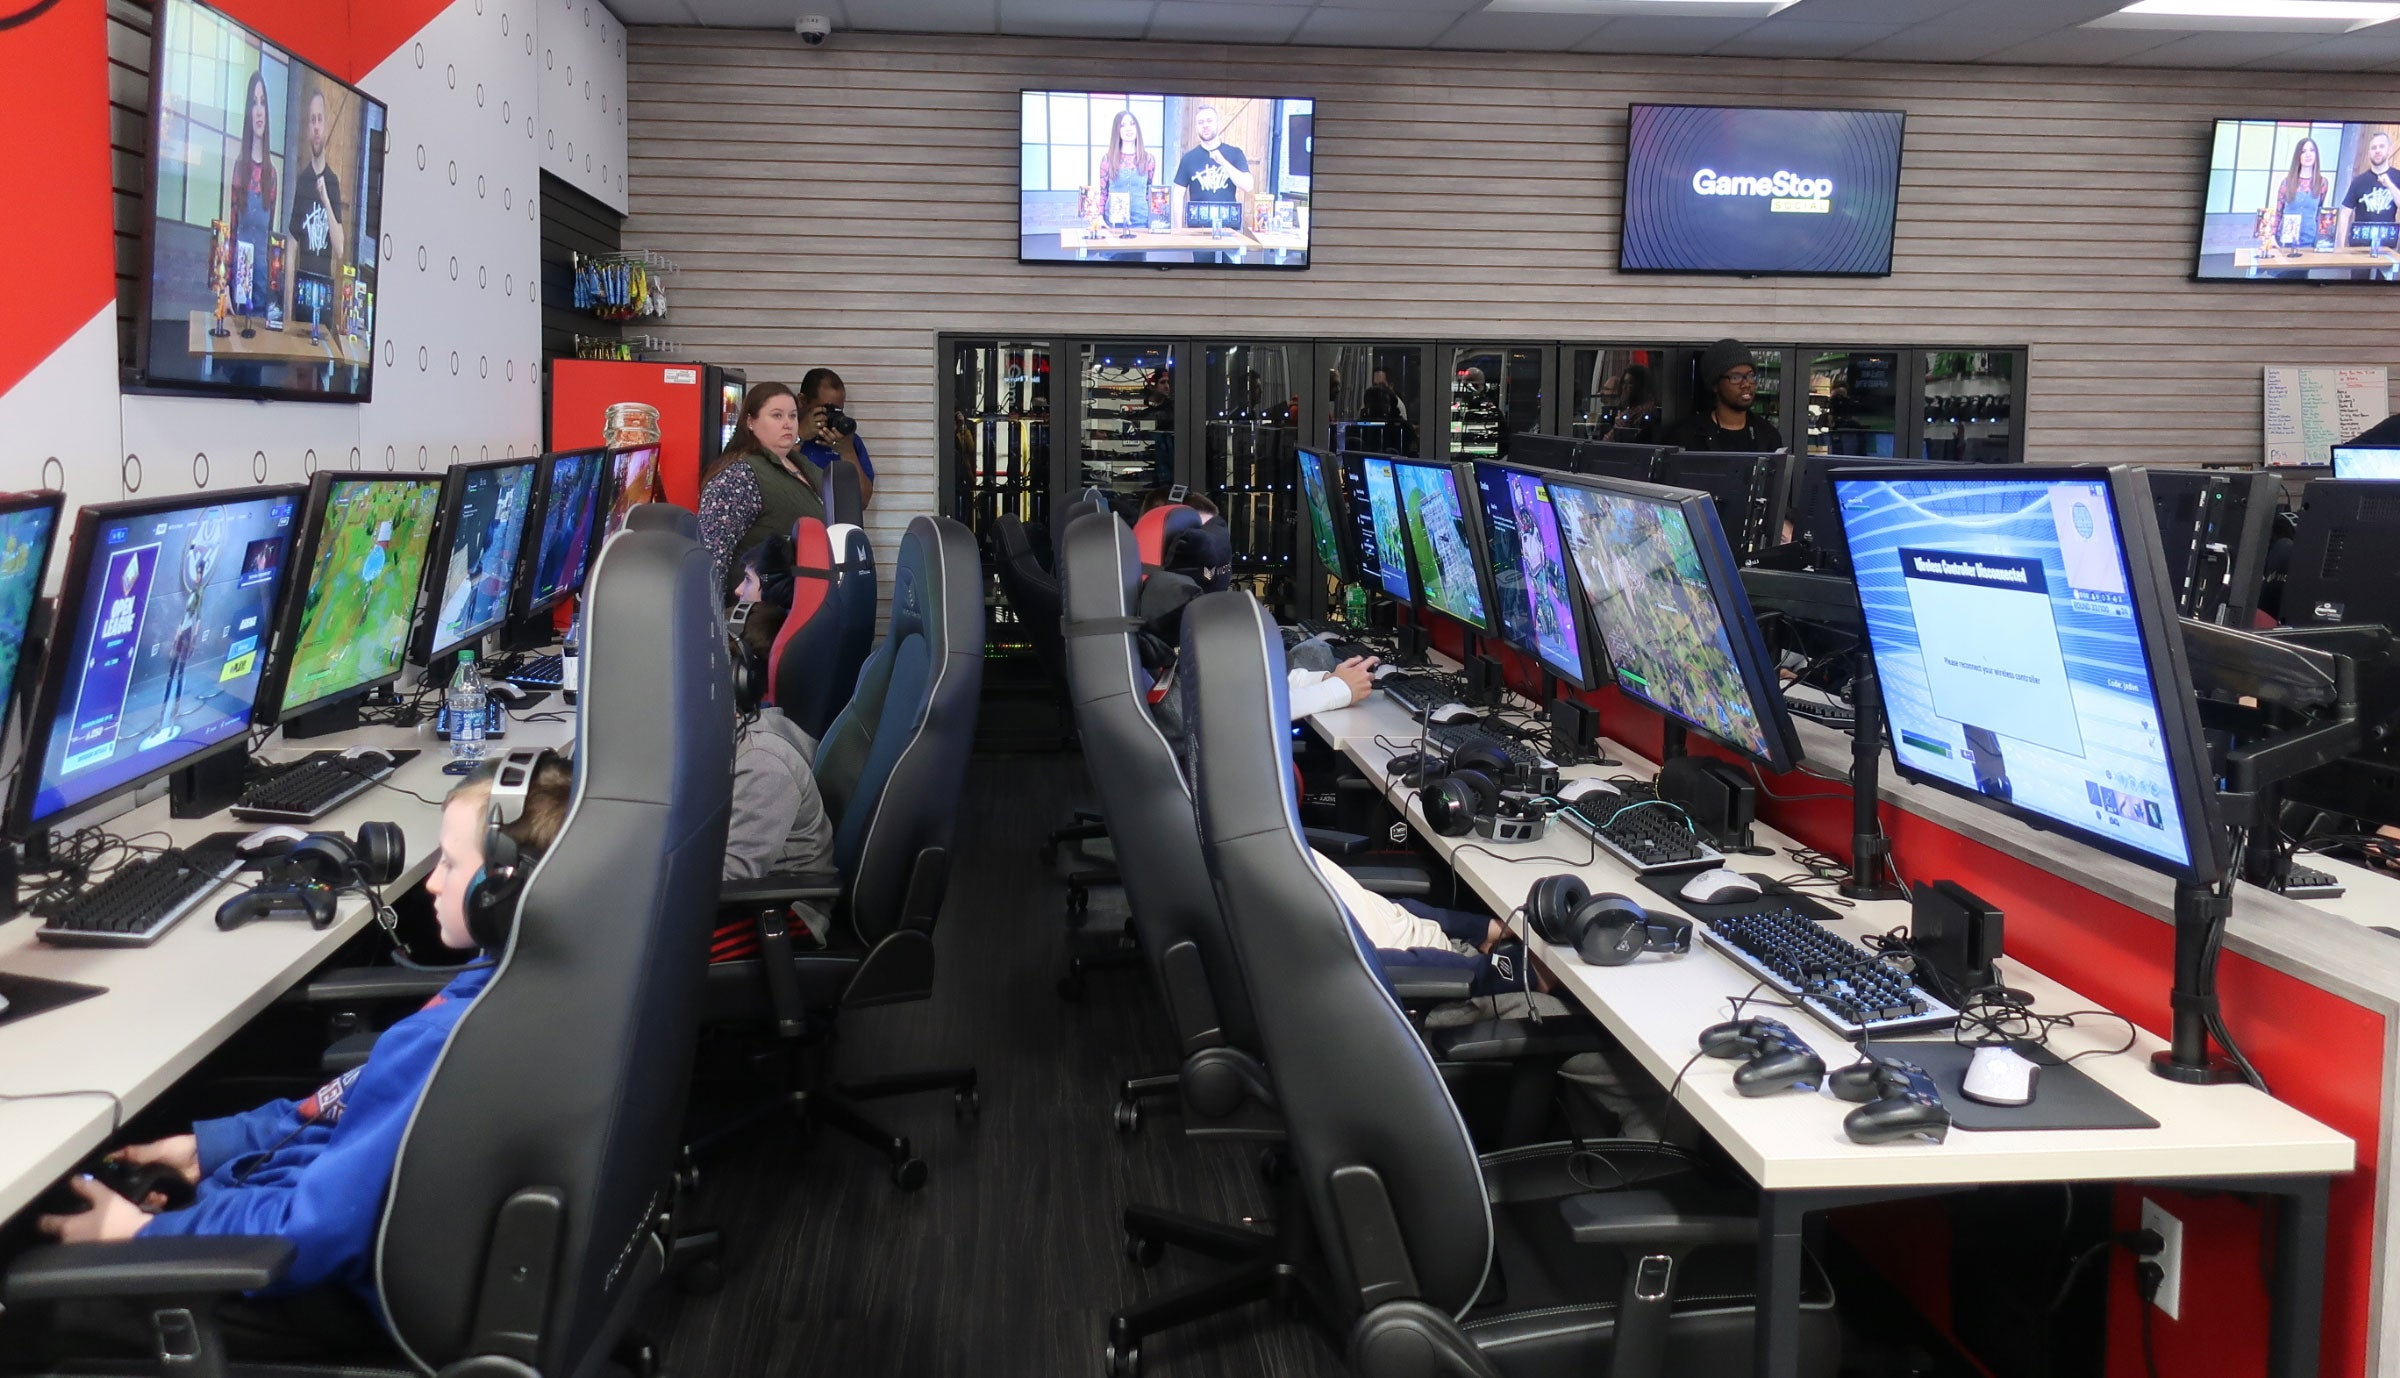 GameStop's Concept Stores Of The Future Are Very Sad